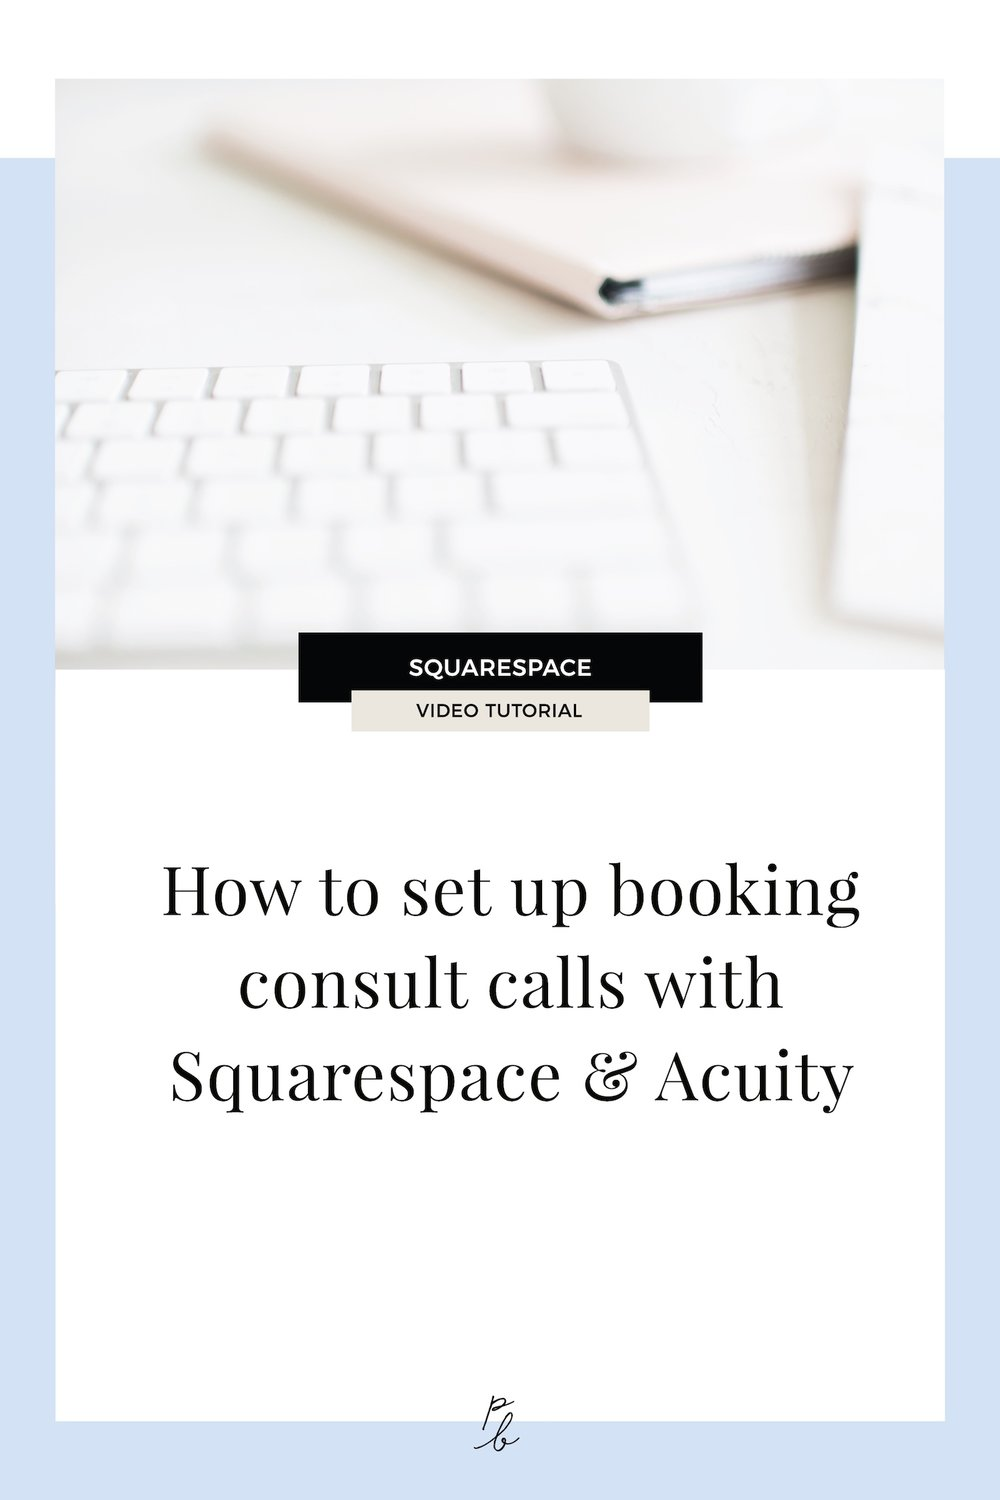 How to set up booking consult calls with Squarespace & Acuity.jpg